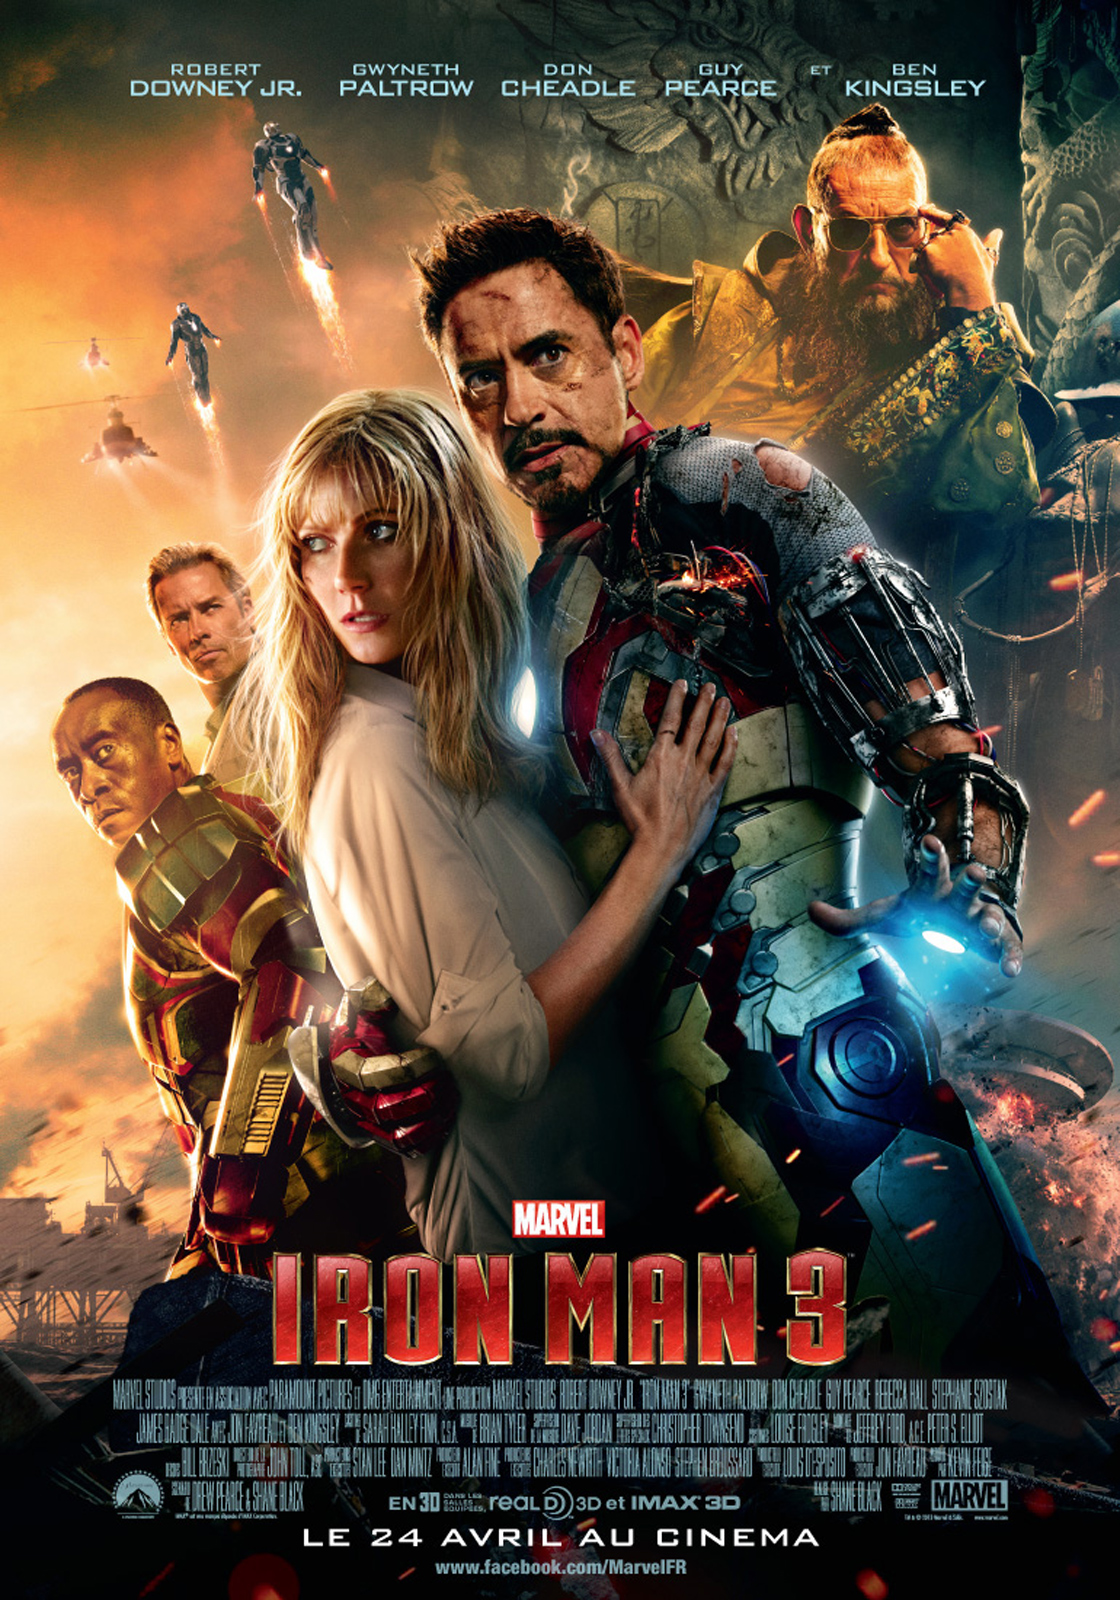 Tlcharger Iron Man 3 [R5] DVDRIP gratuit